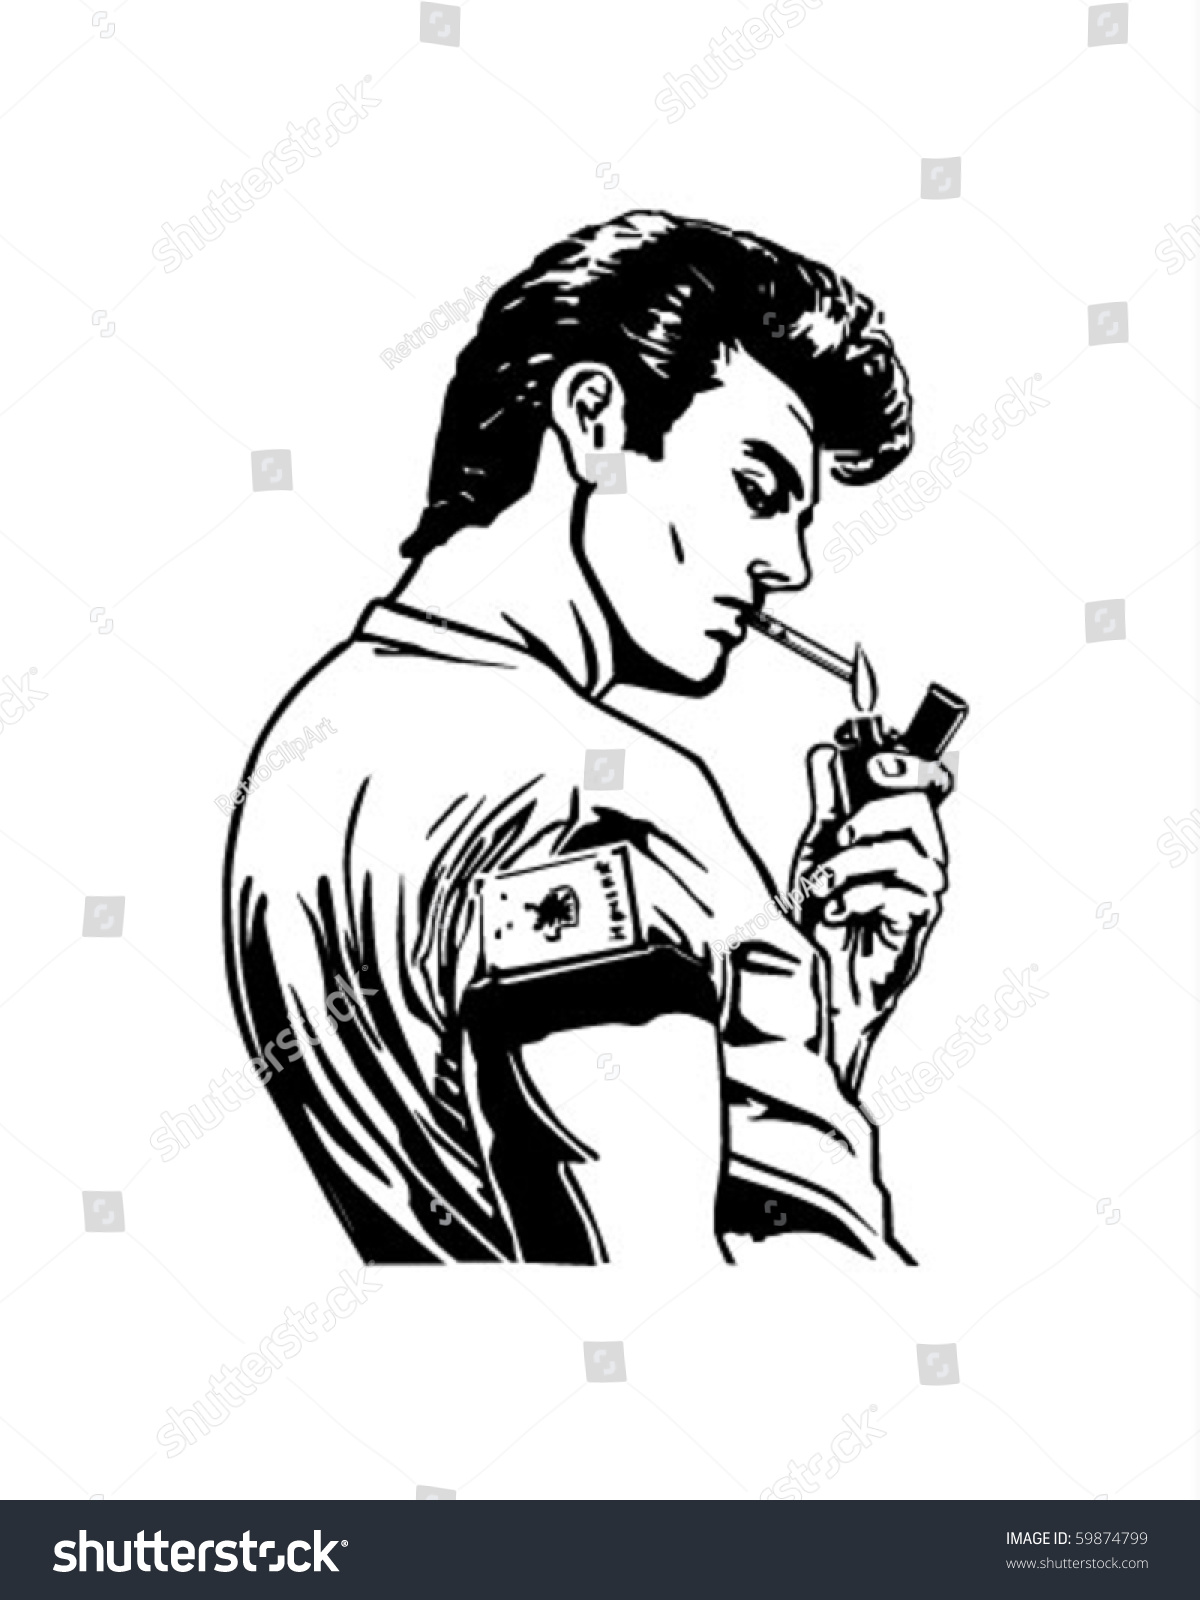 greaser dating sites Ok, greaserluke turning into a total sweetheart whoever you're around, even before y'all started dating lotsa greasers did it in the 1950s.